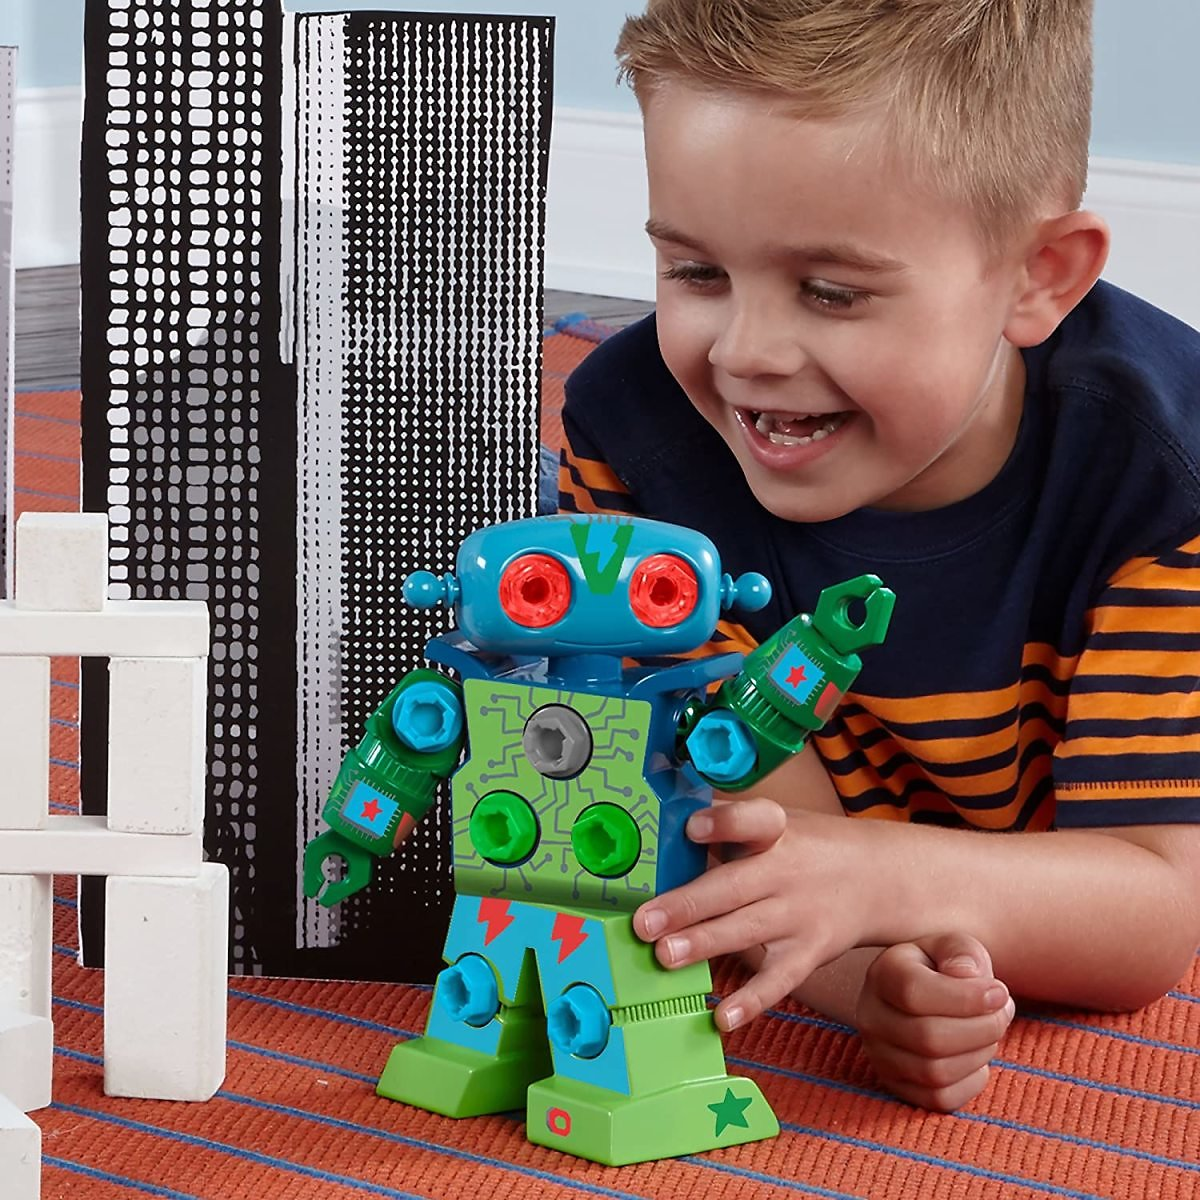 Up to 45% Off Learning Toys